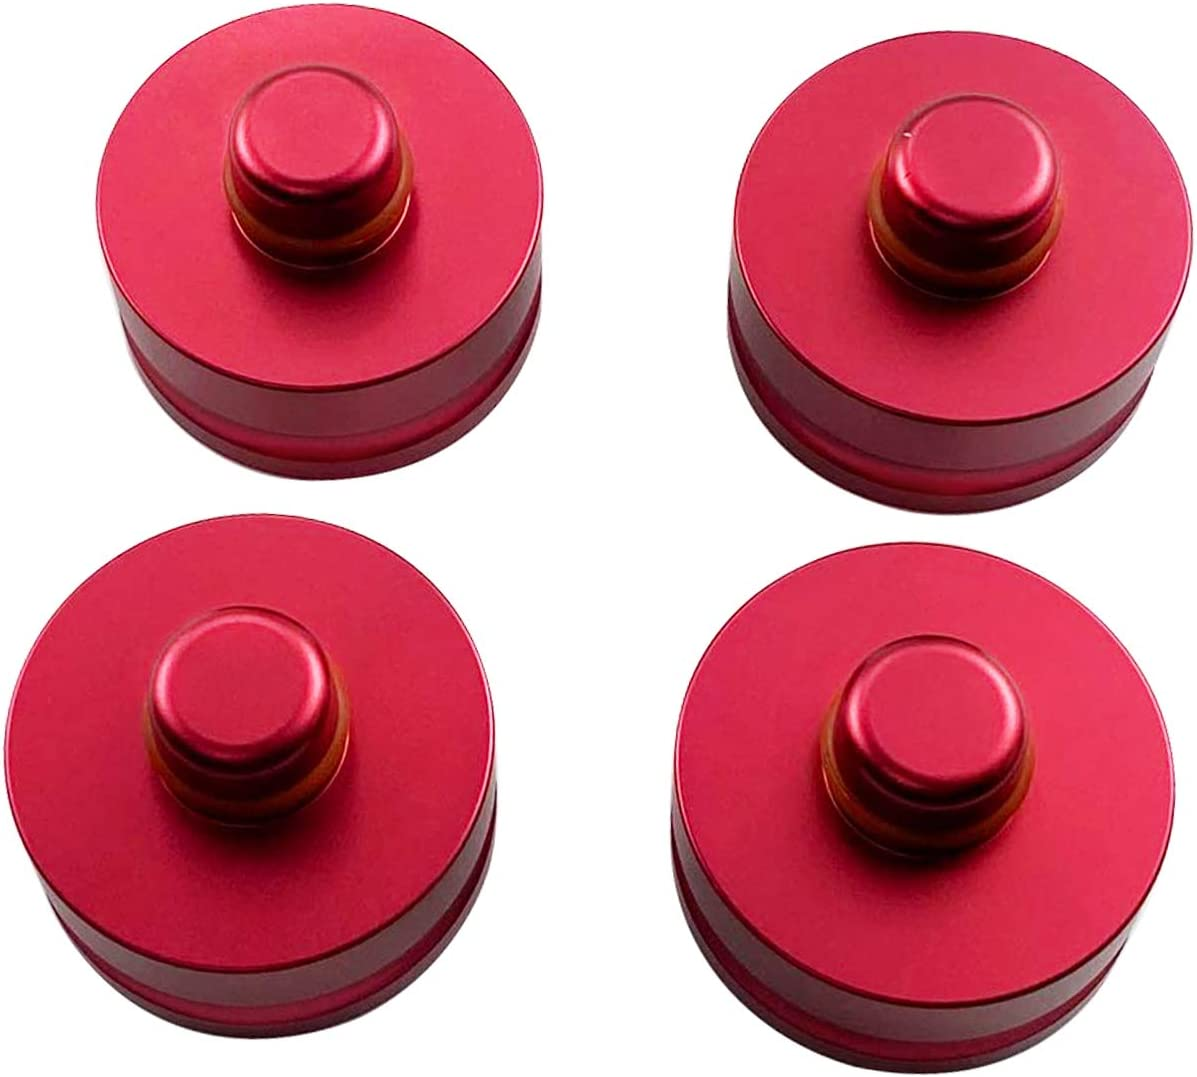 4 pcs Sporthfish Jack Lift Point Pad Adapter for Tesla Model 3 Safely Raising Vehicle Protects Battery Paint /& Chassis